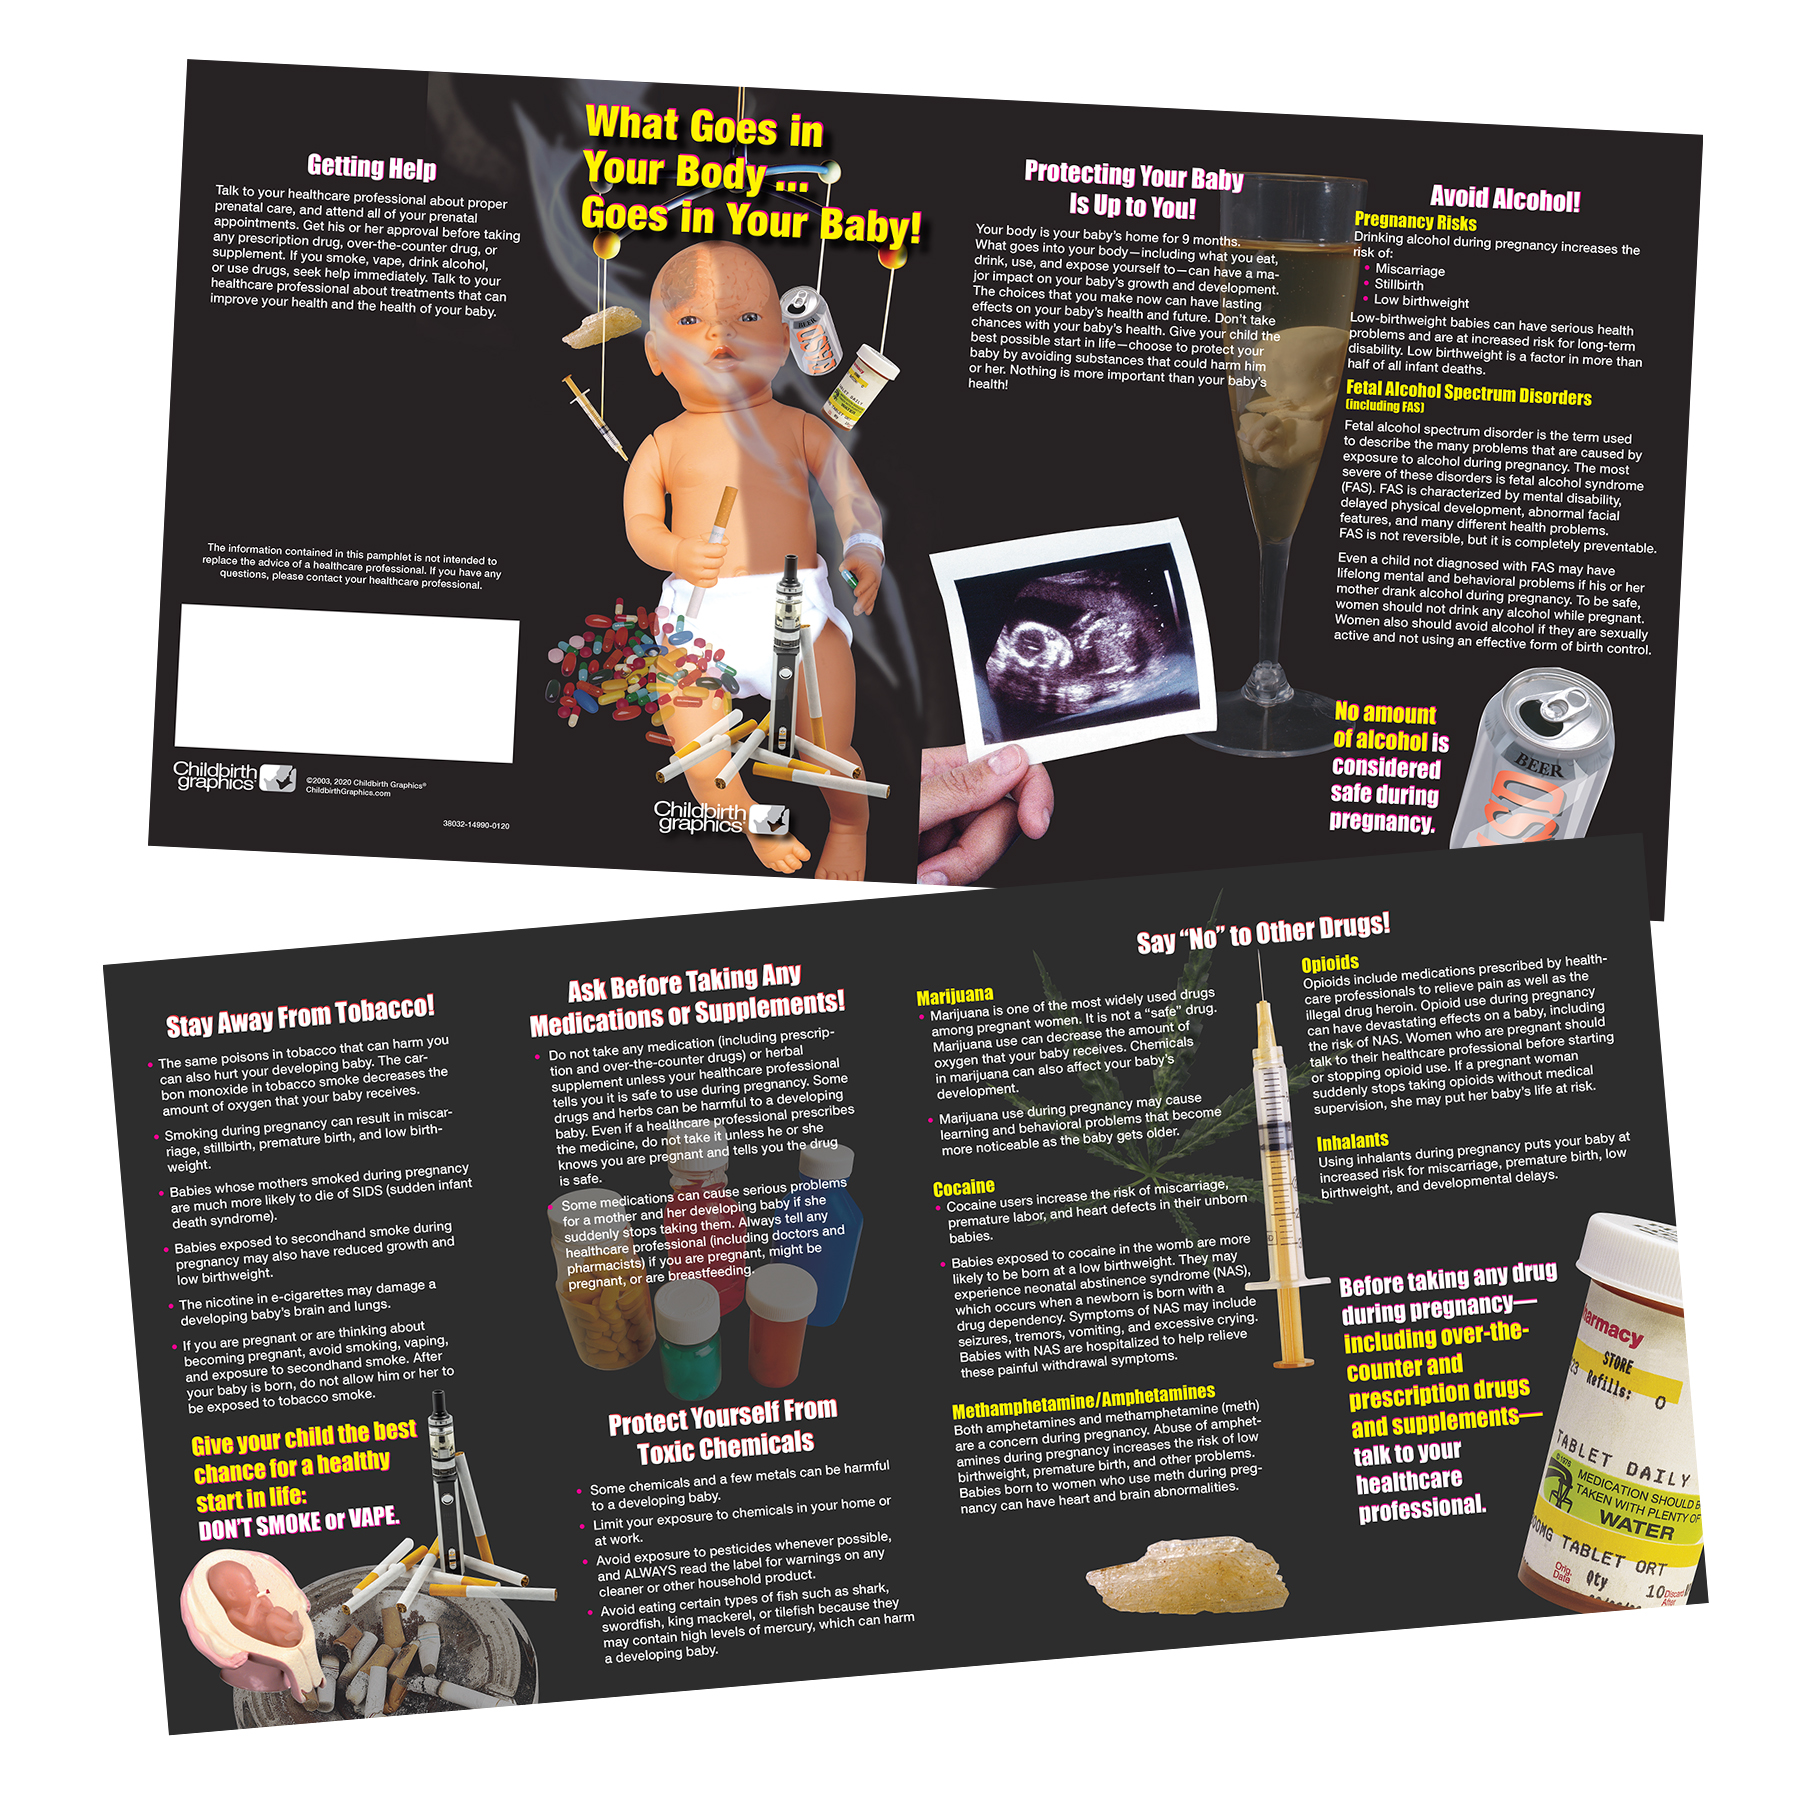 Deter Pregnant Women From Using Alcohol Tobacco Drugs And Effects On Her Baby 8 Panel